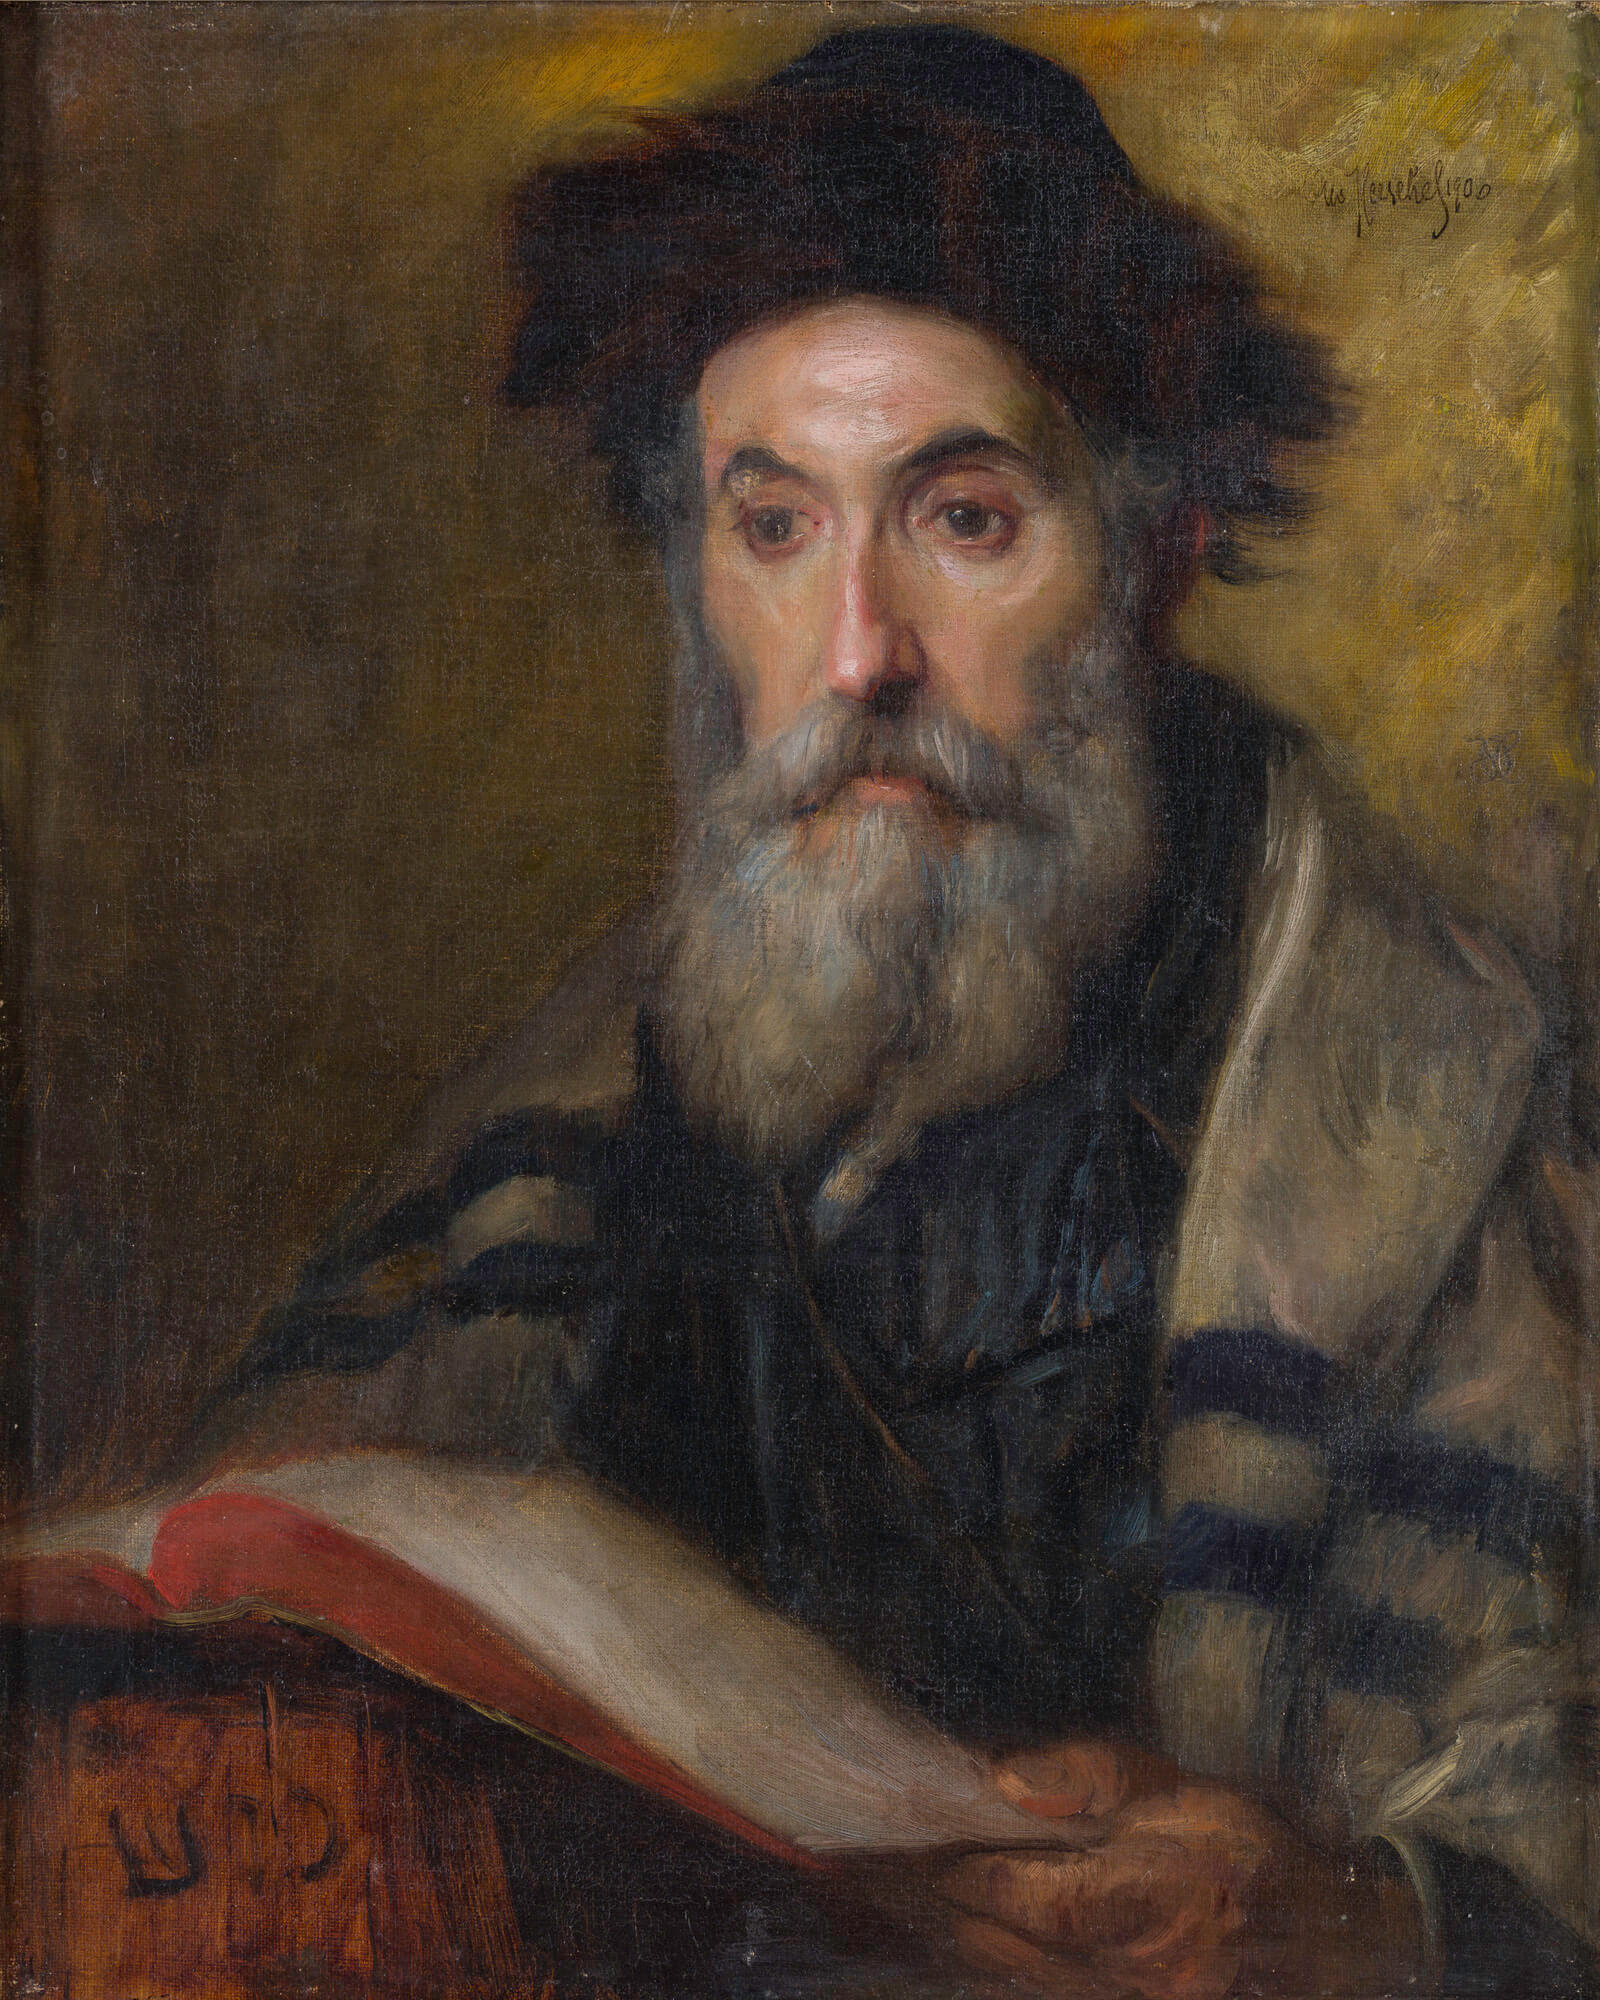 203. O. Hershler. Old Rabbi in Garb.